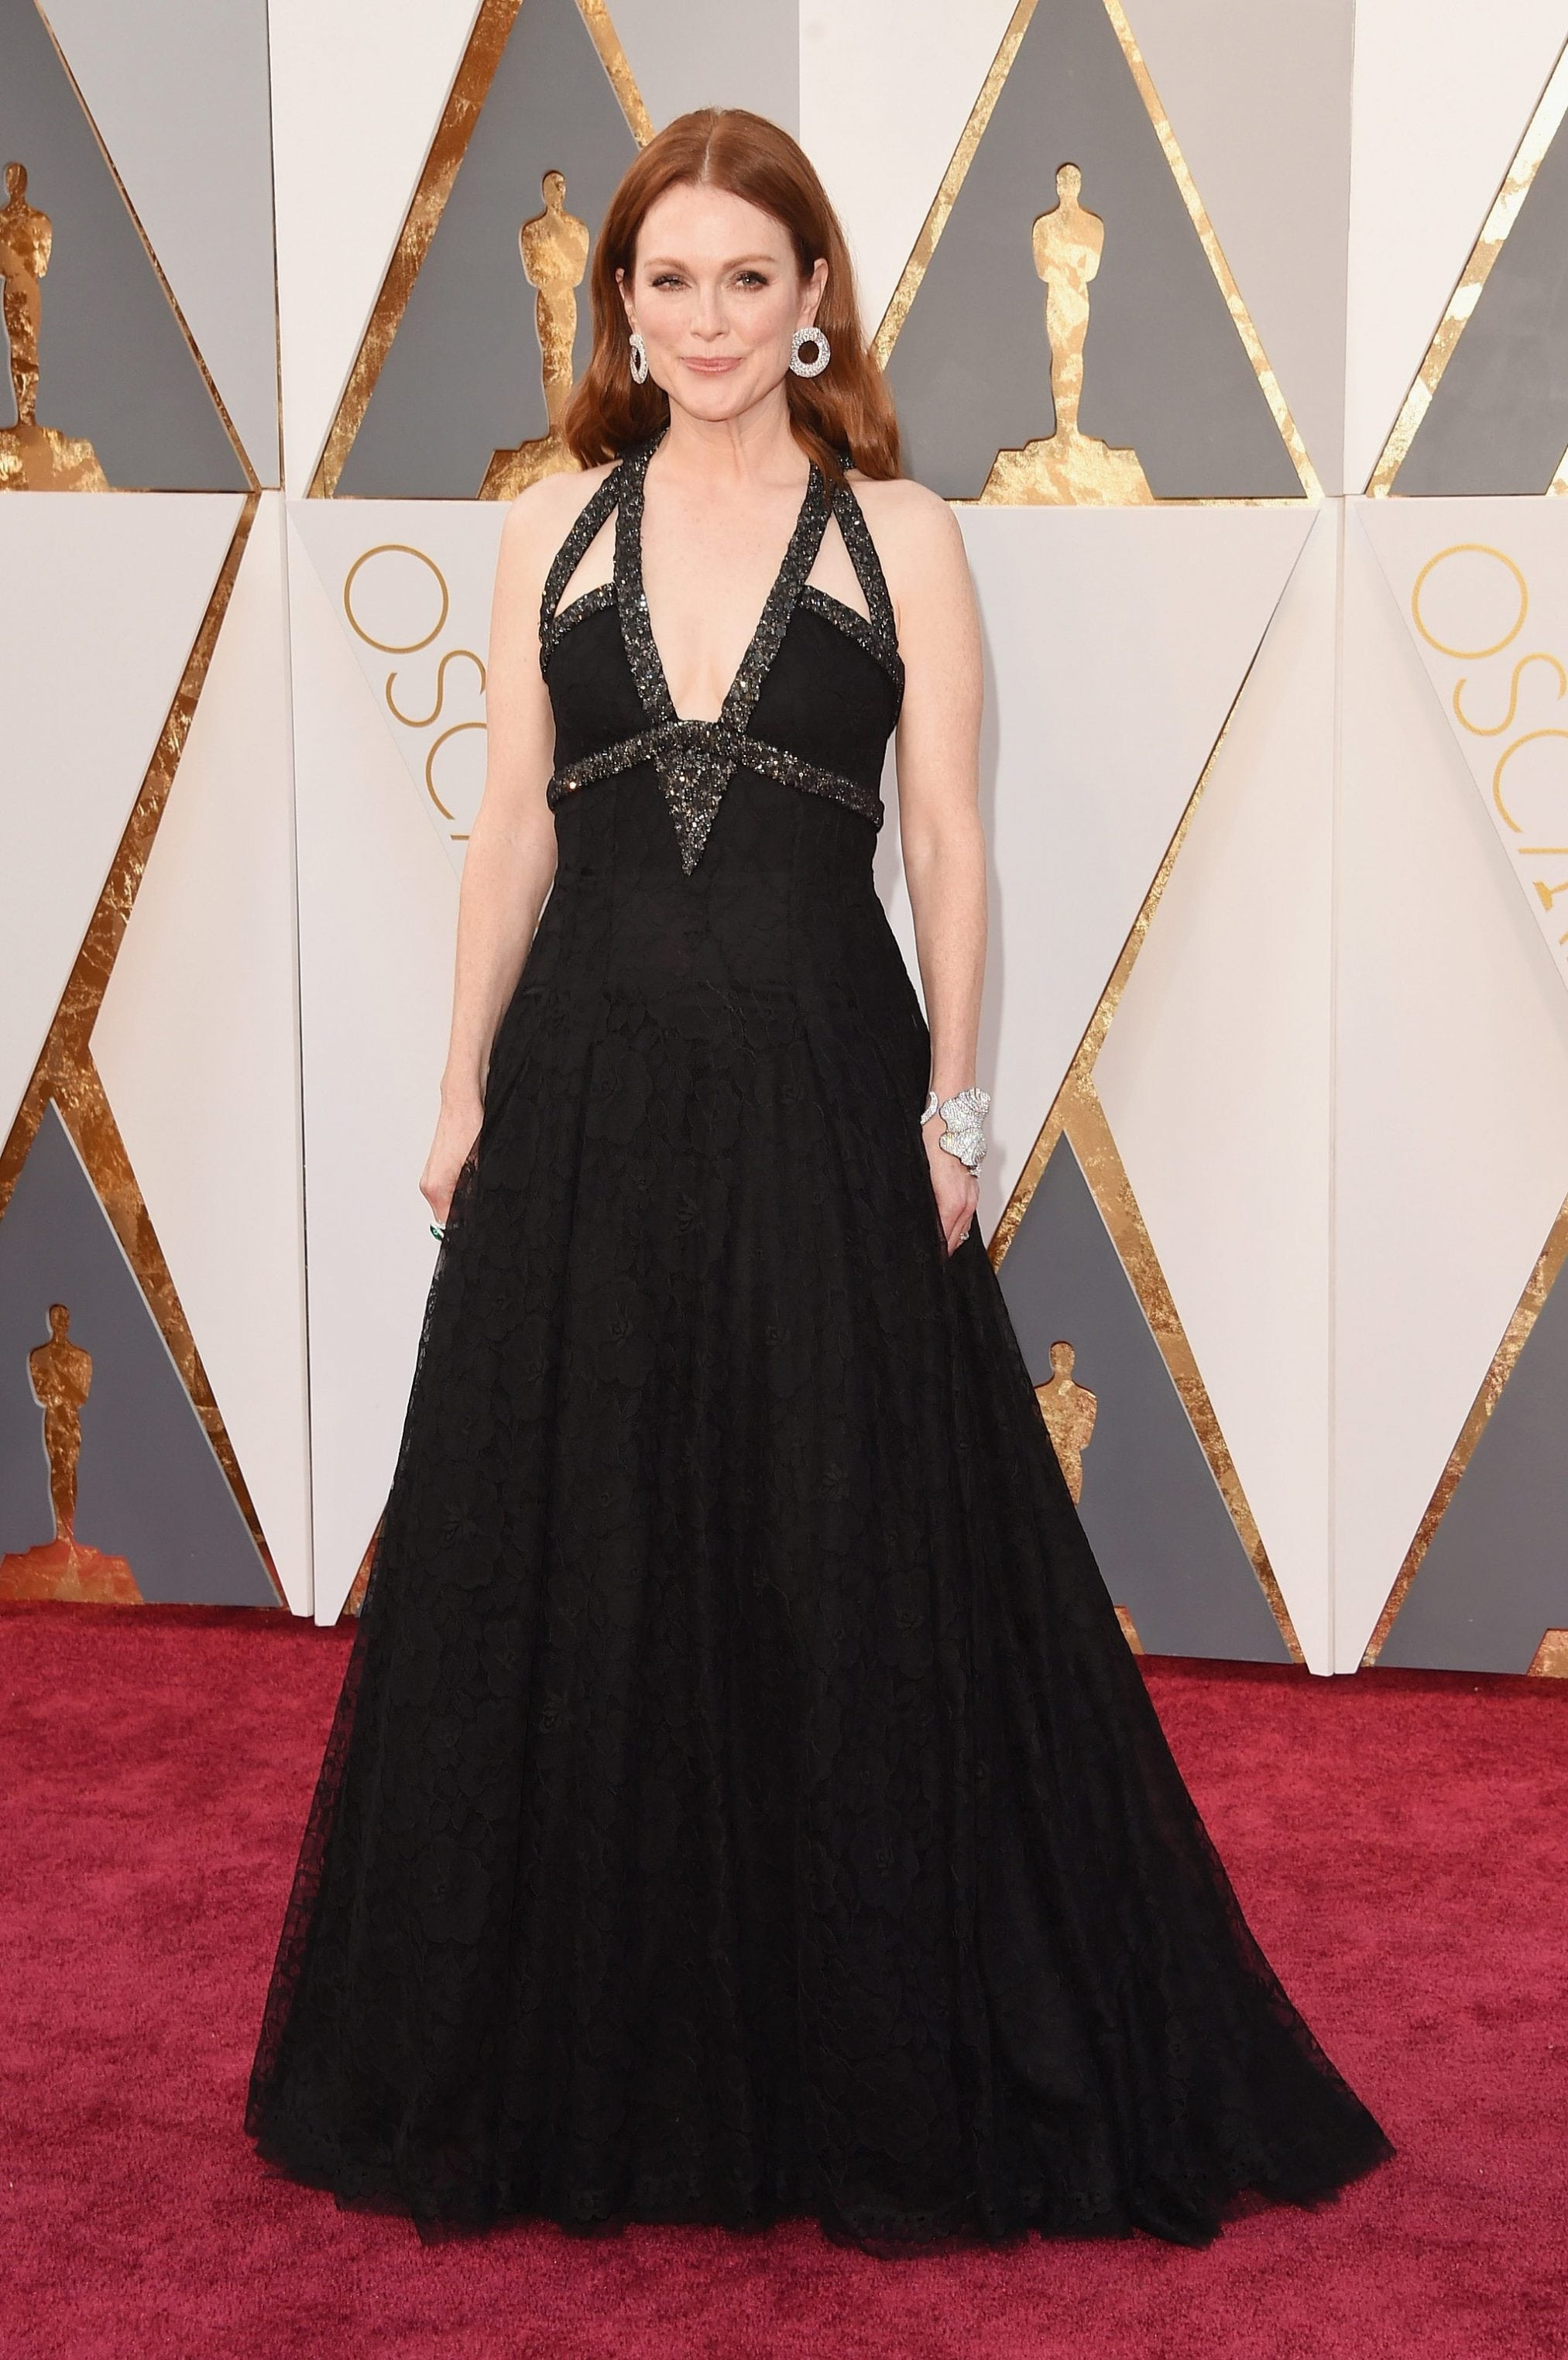 Julianne-Moore-Wearing-a-custom-Chanel-Haute-Couture-gown-and-Chopard-jewels.-Image-Source-Getty-Jason-Merritt